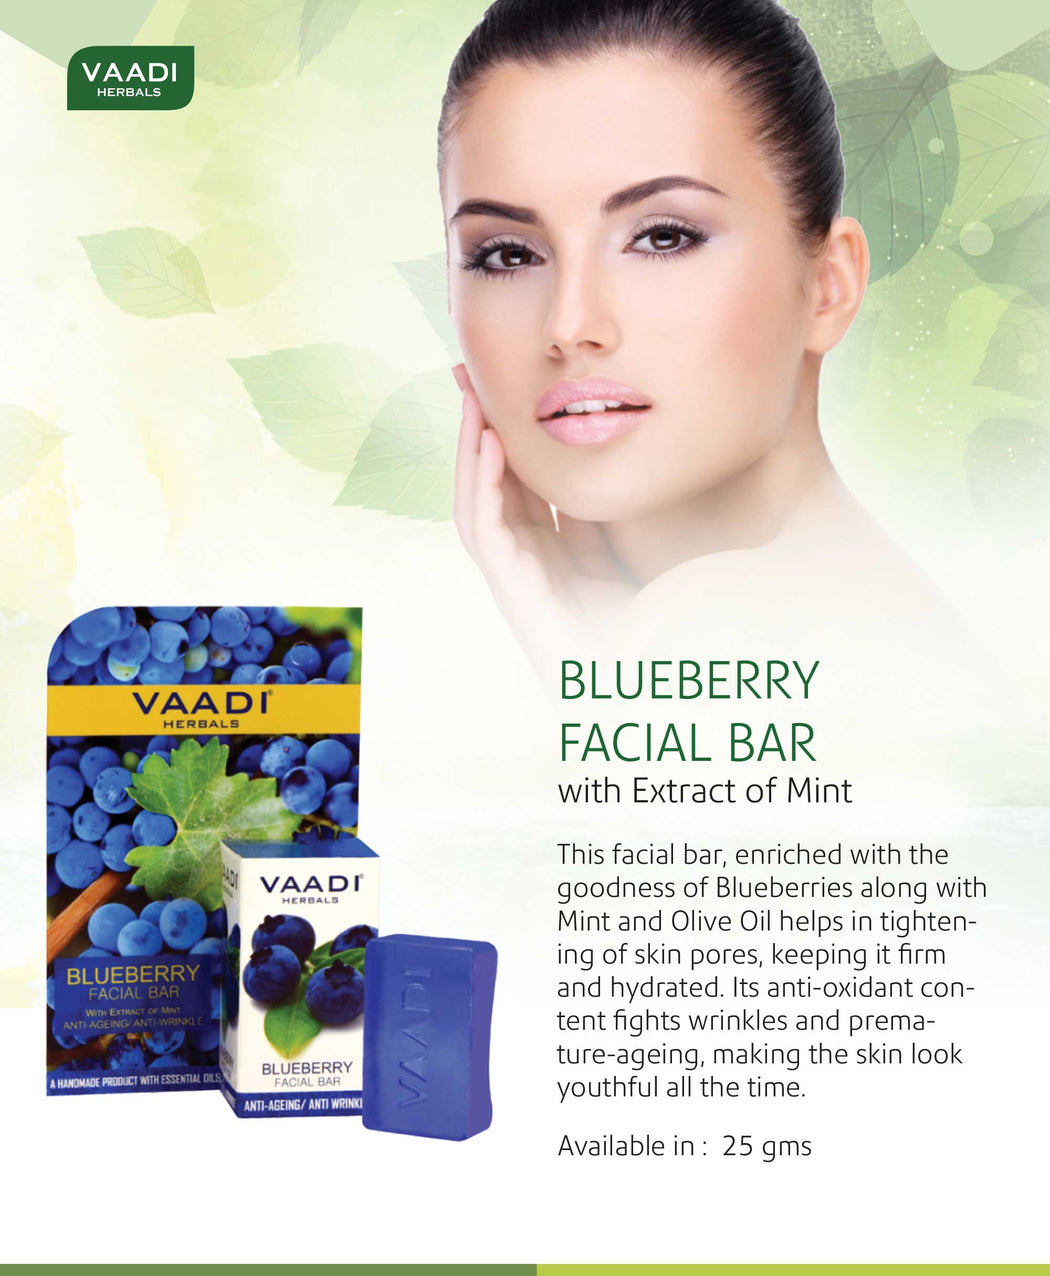 Organic Blueberry Facial Bar with Mint Extract & Olive Oil - Prevents Wrinkles (6 x 25 gms/0.9 oz)